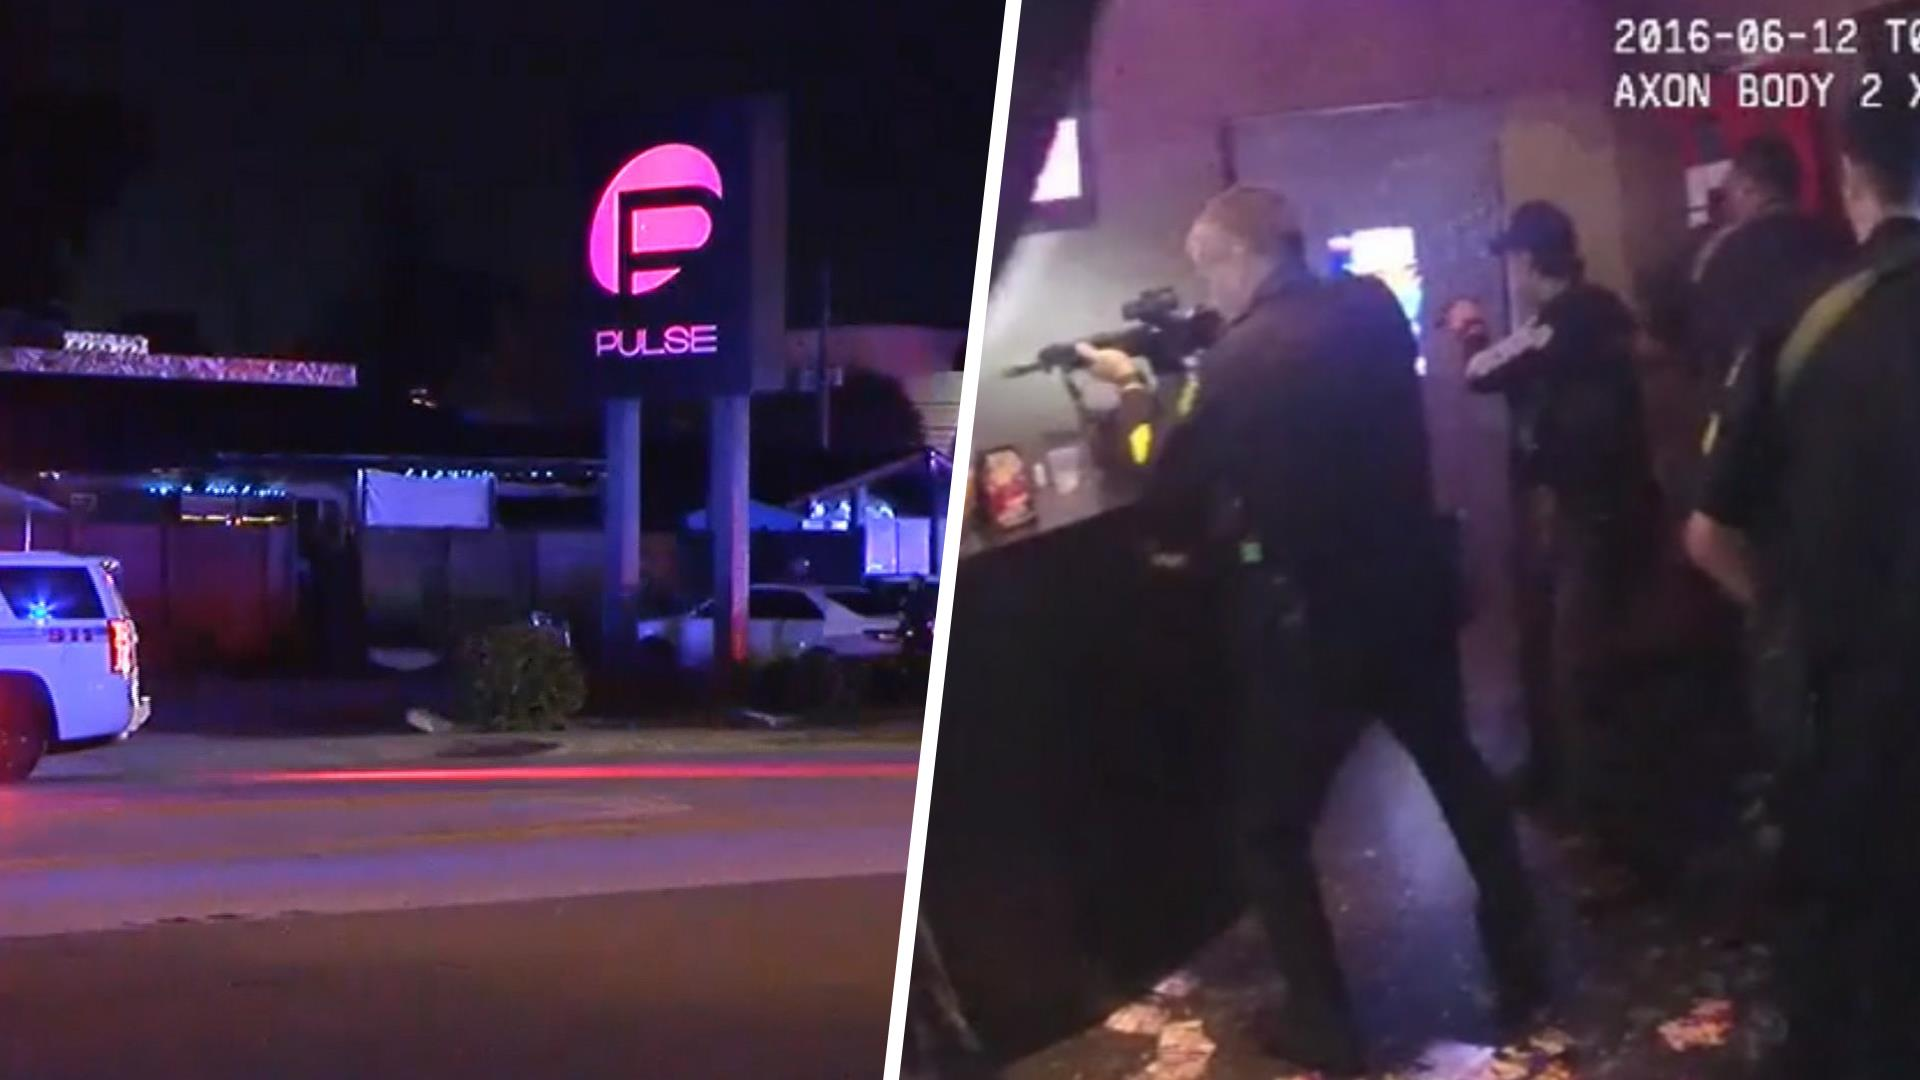 Chilling Video Shows Police Entering Pulse Nightclub